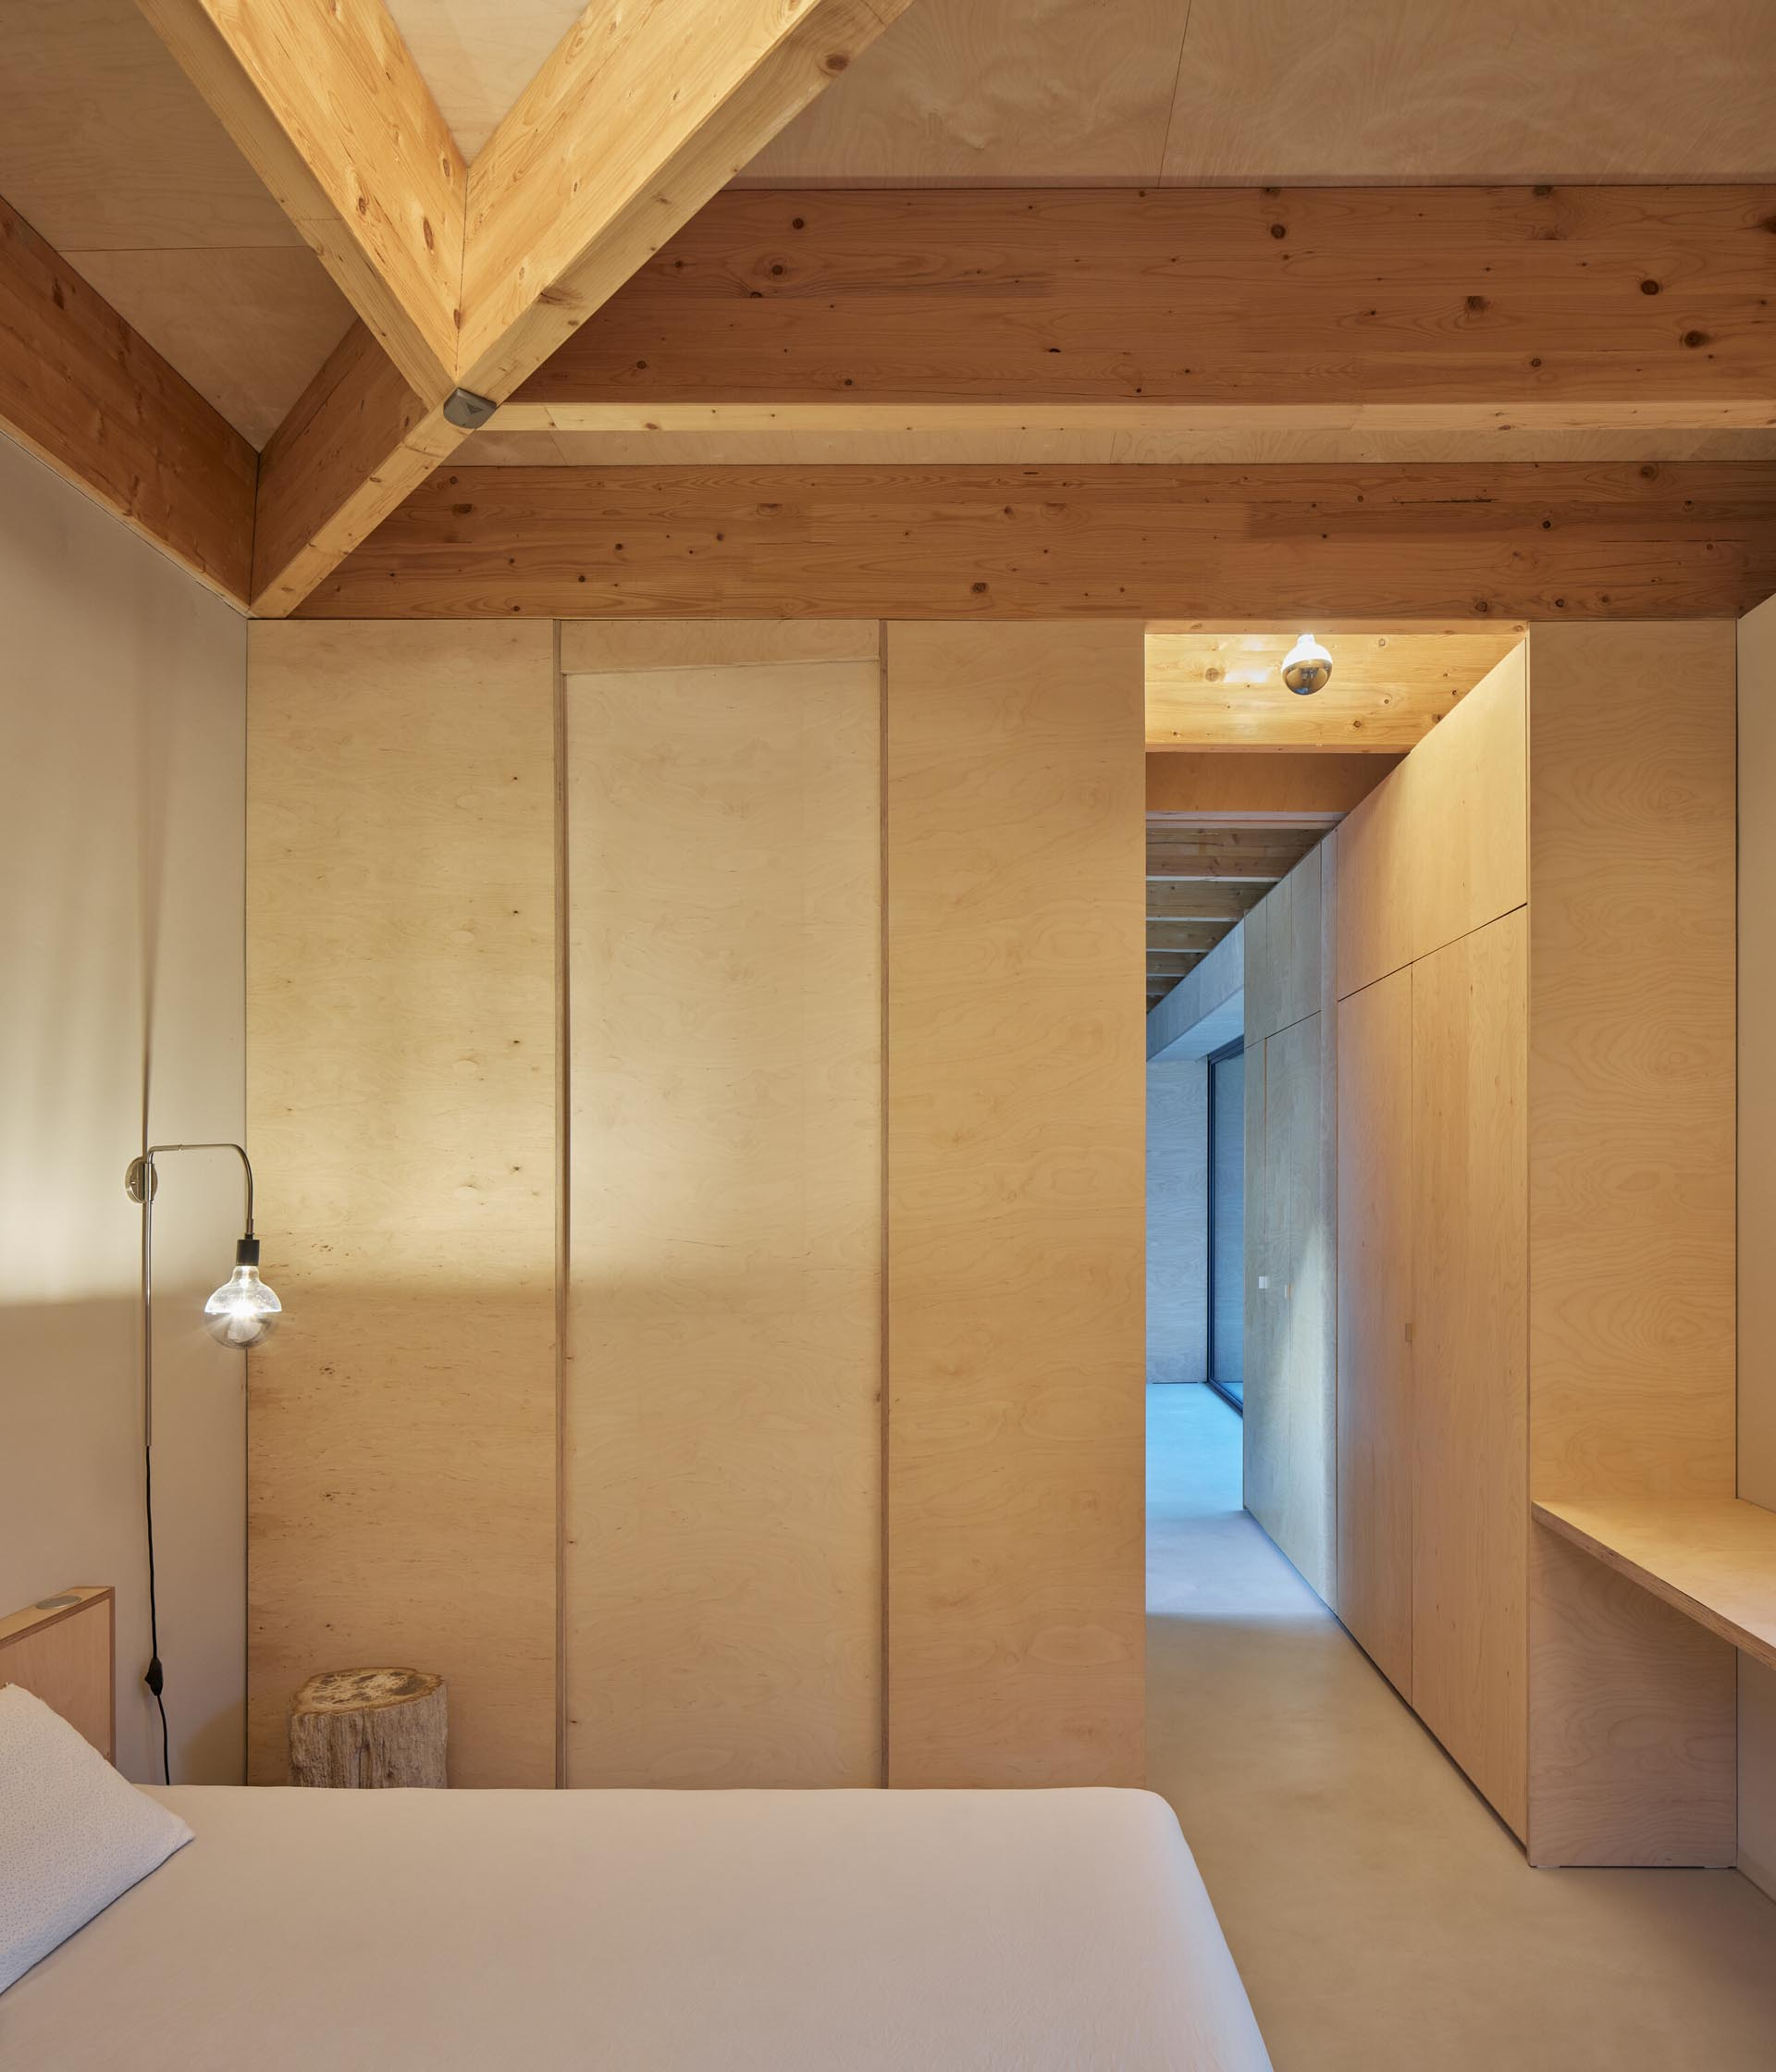 Plywood closets line the hallway that leads to a bedroom, which is minimally furnished.